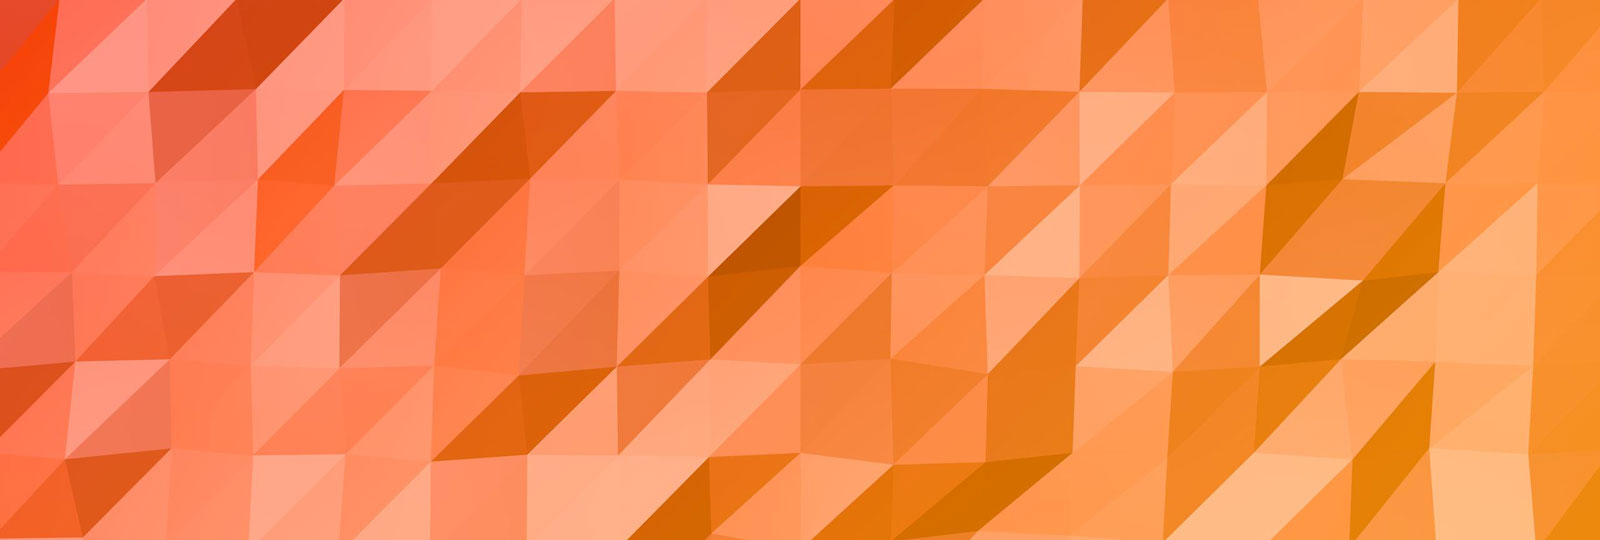 orange-wallpaper-crop.jpg